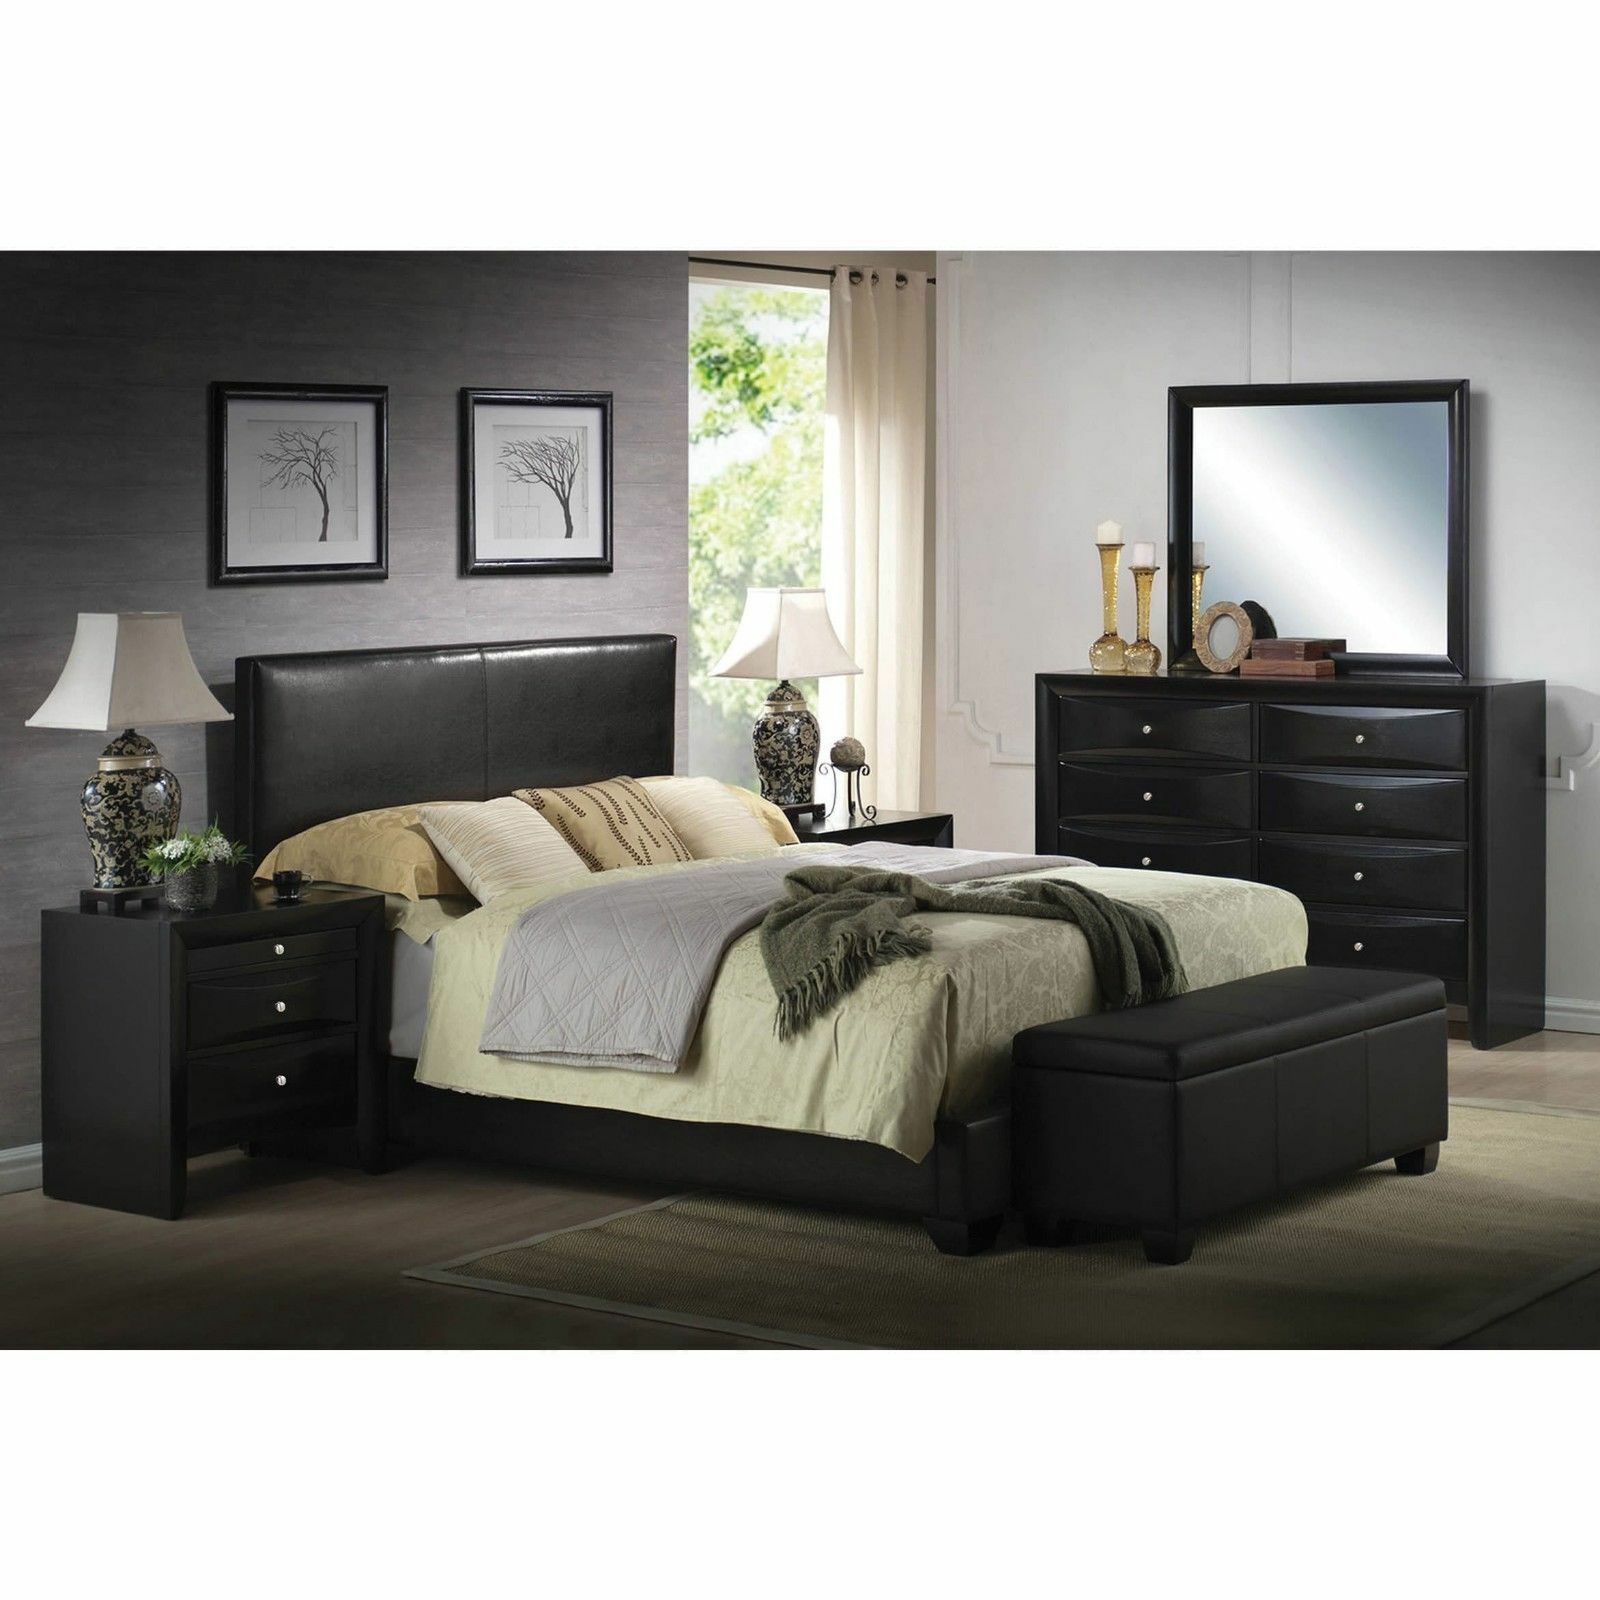 Platform KING Size Bed Black Leather Headboard Bedroom Furni